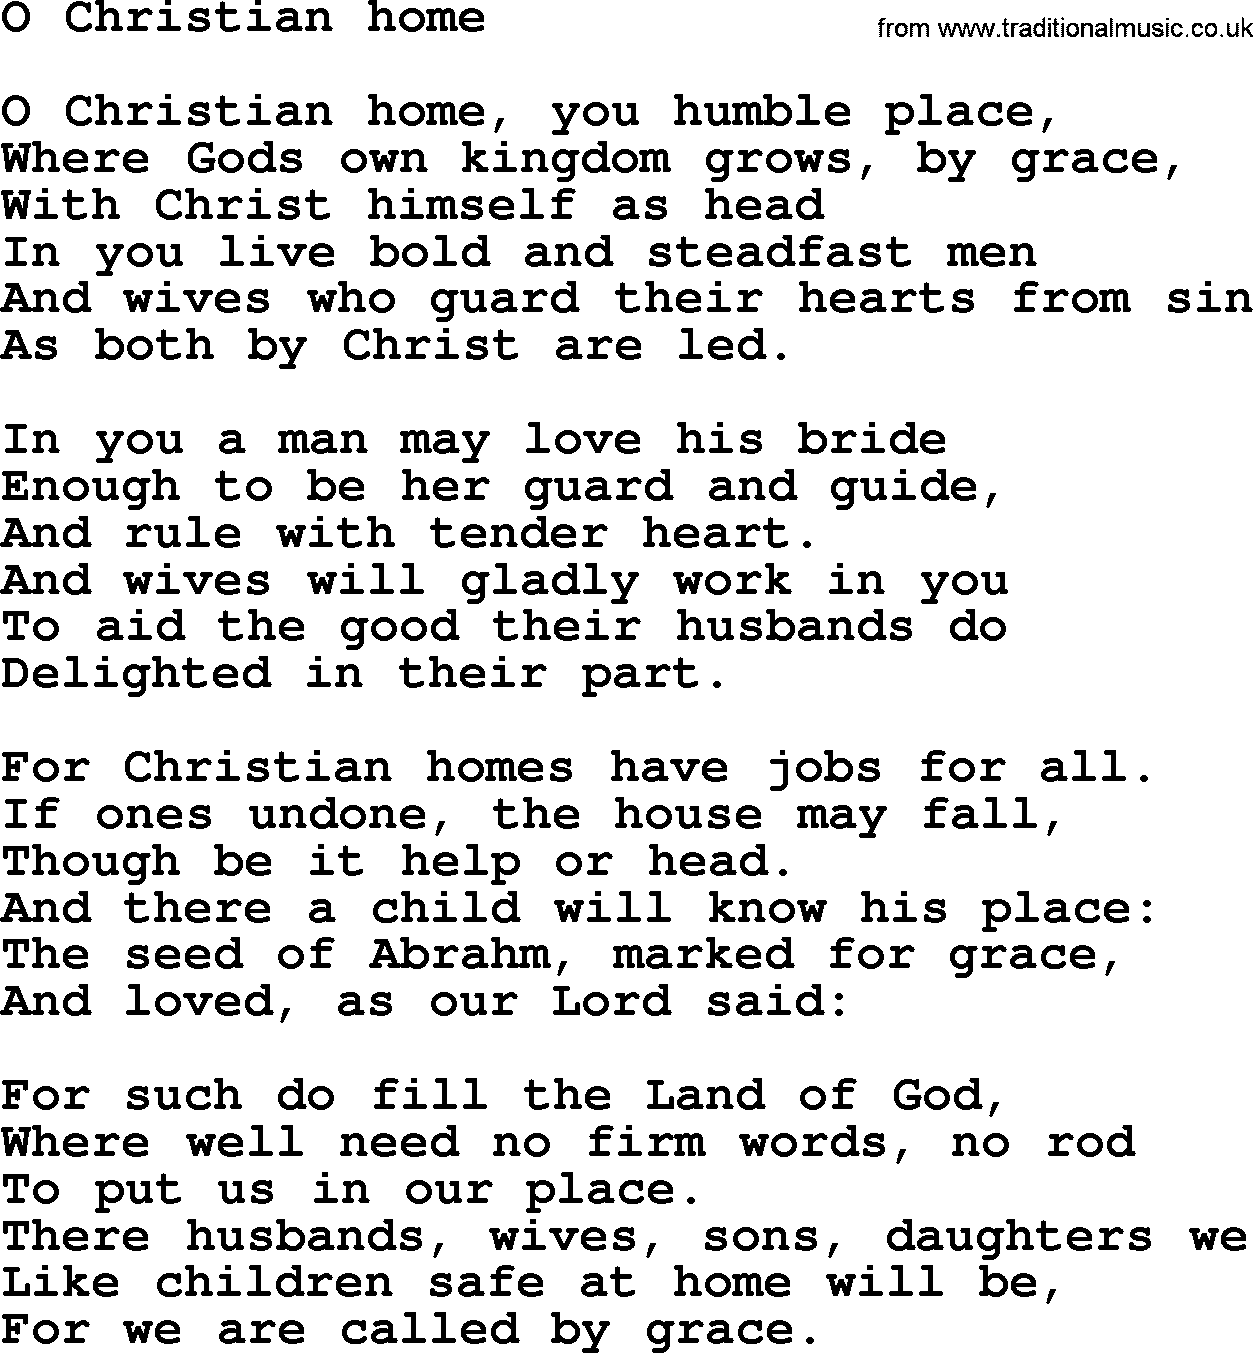 Wedding Hymns And Songs O Christian Home Txt Lyrics Chords And Pdf